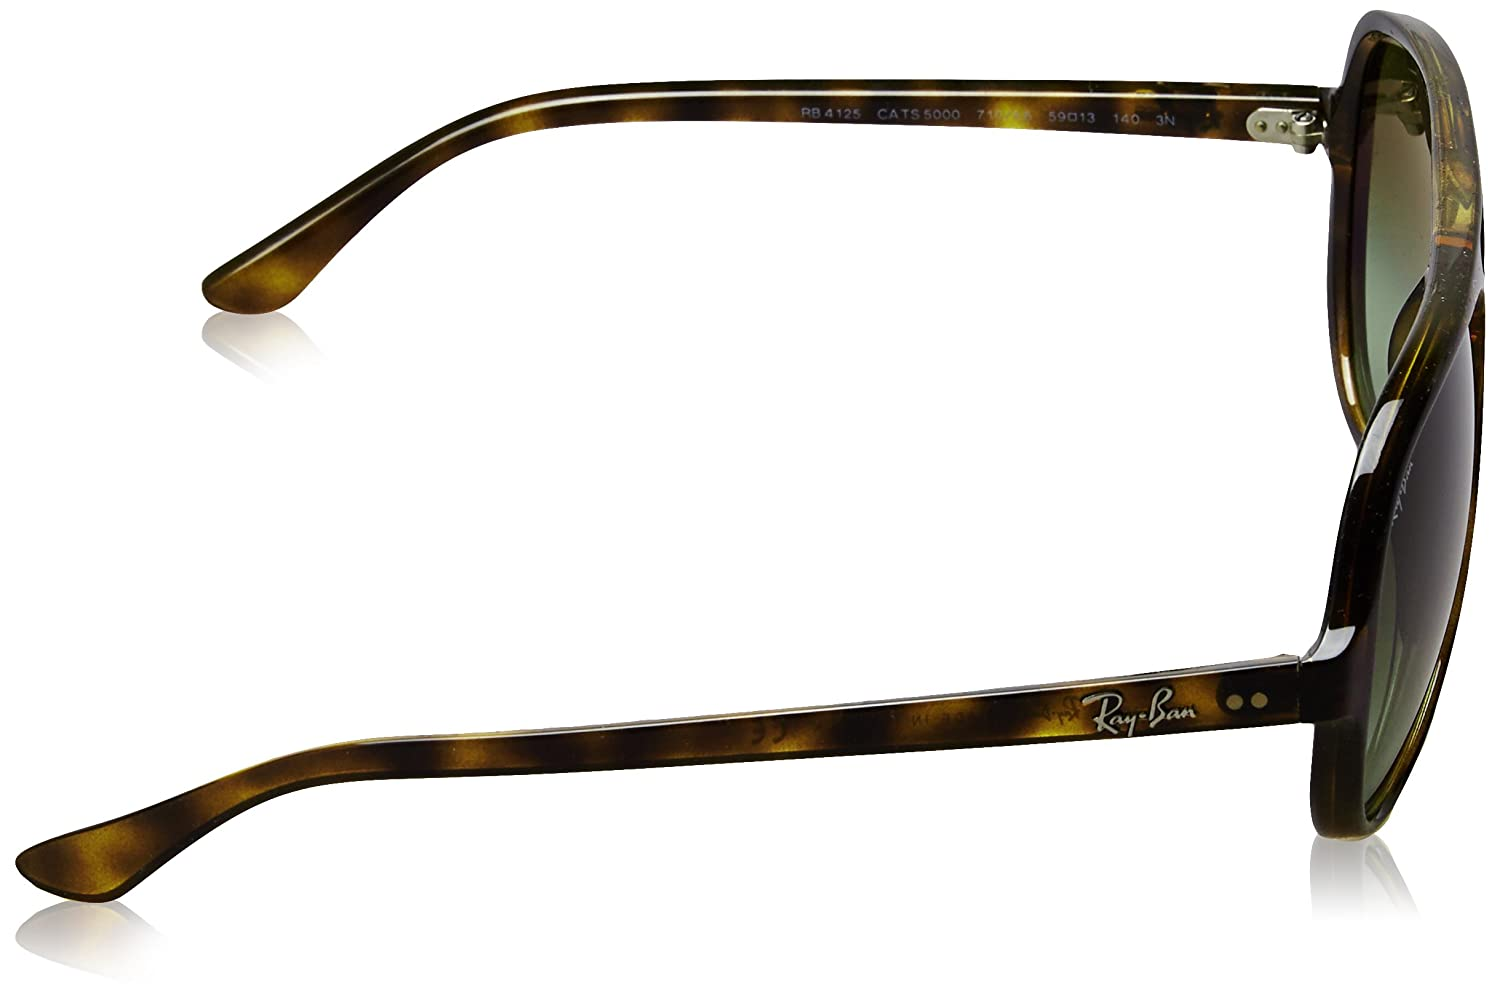 64b3641982e72 Ray-Ban Sonnenbrille CATS 5000 (RB 4125)  Ray Ban  Amazon.co.uk  Clothing